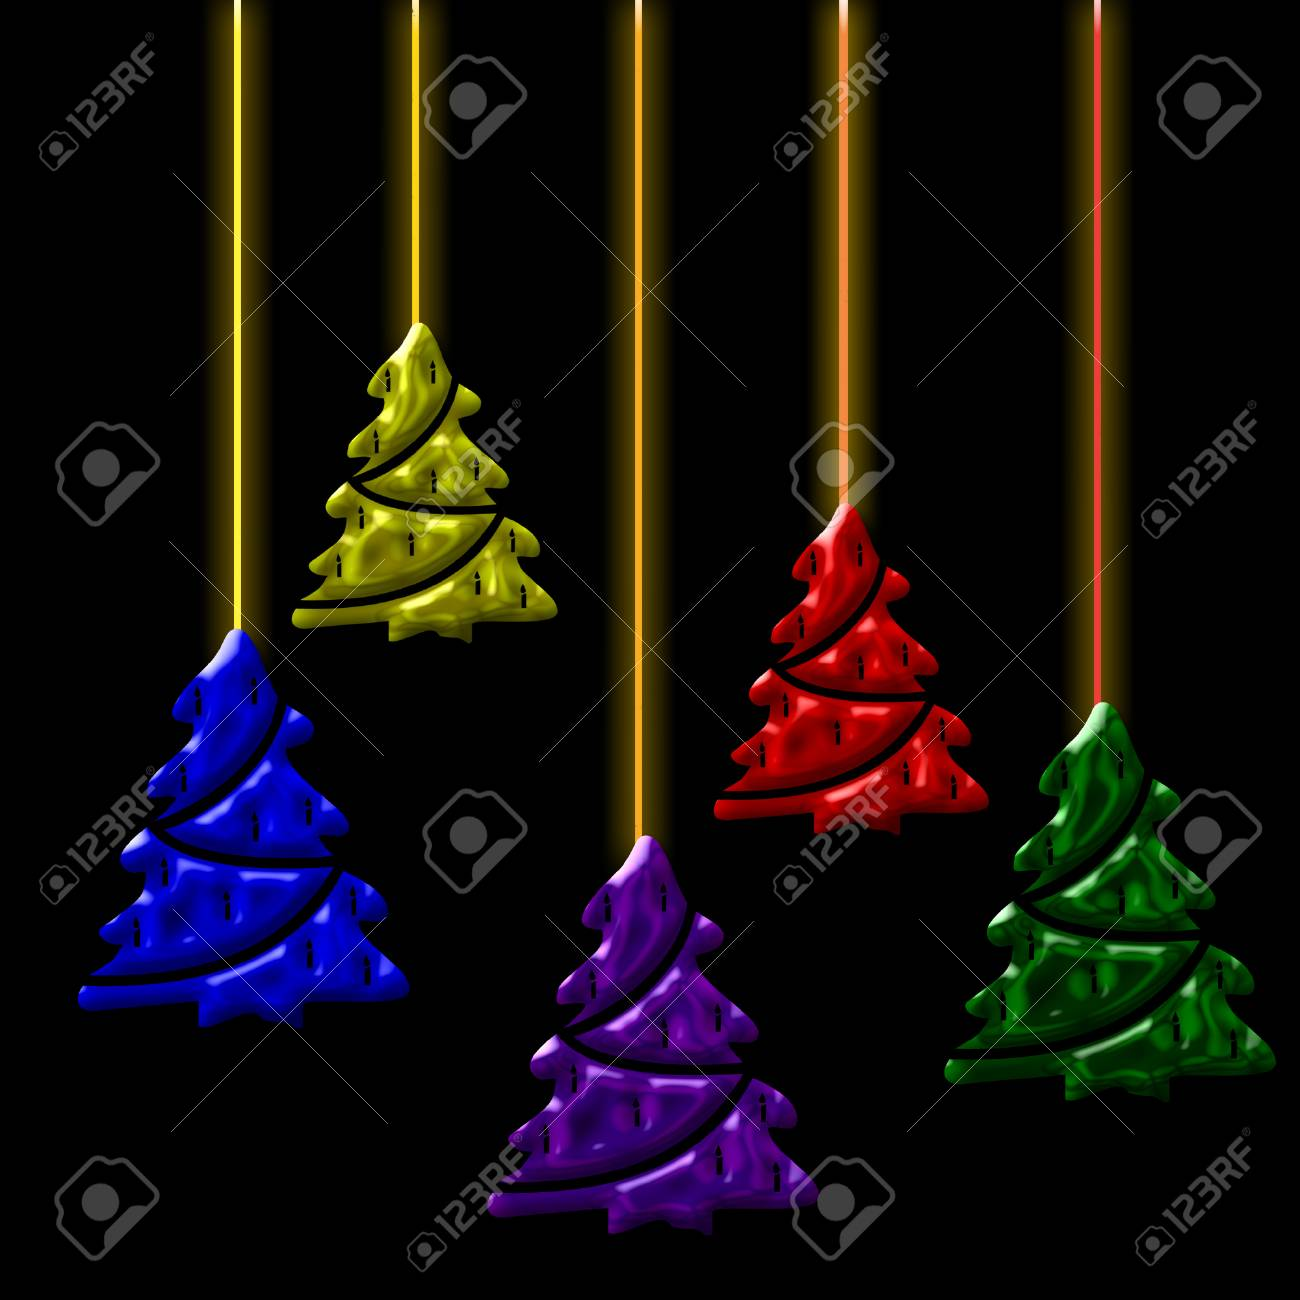 Cool Christmas Tree.Several Christmas Trees In Cool Colors Dangling From Strings